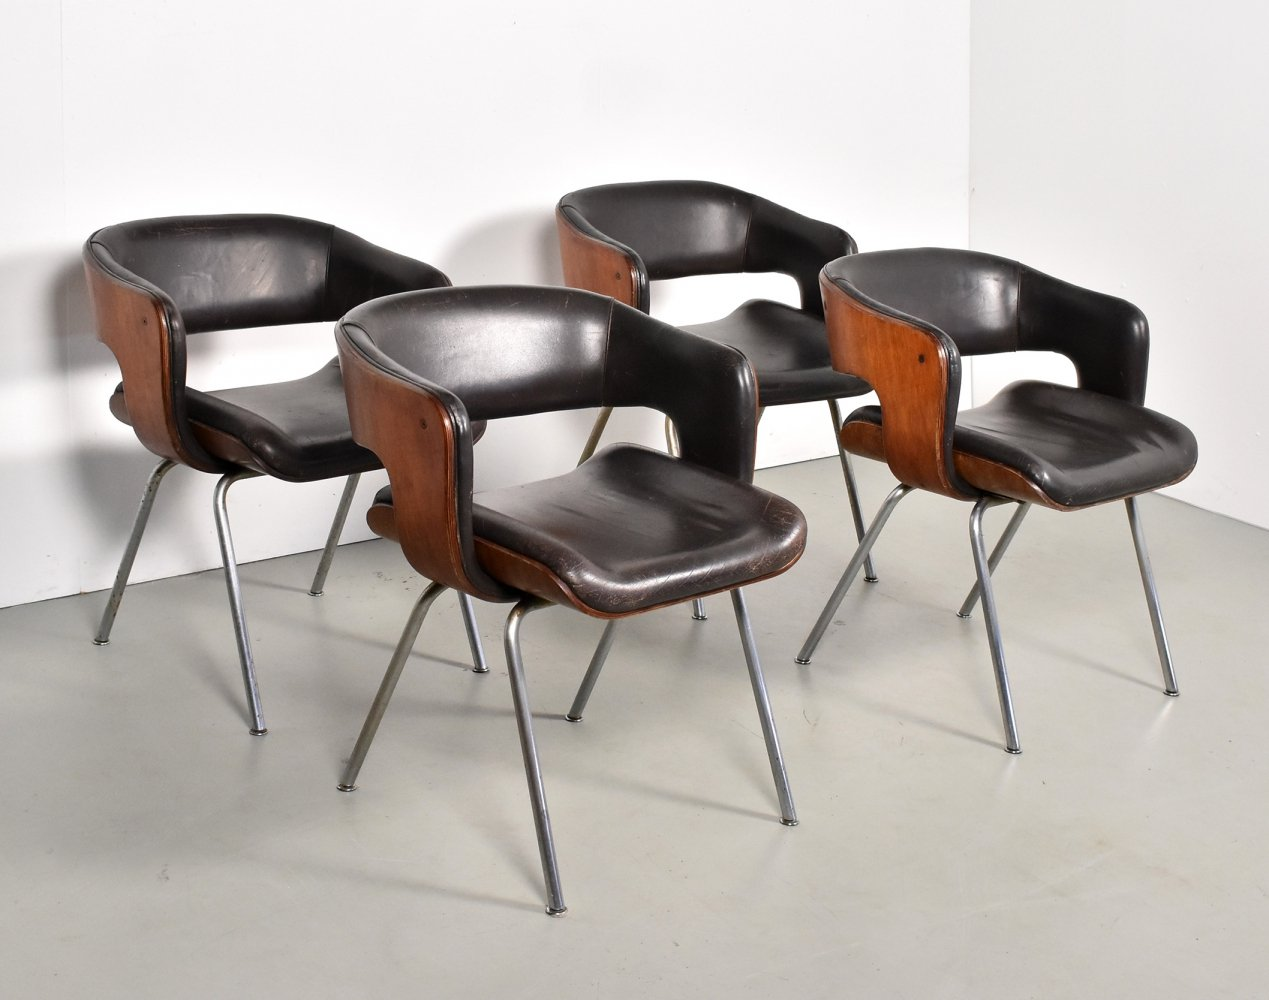 Set of 4 Oxford dining chairs by Martin Grierson for Arflex, 1970s